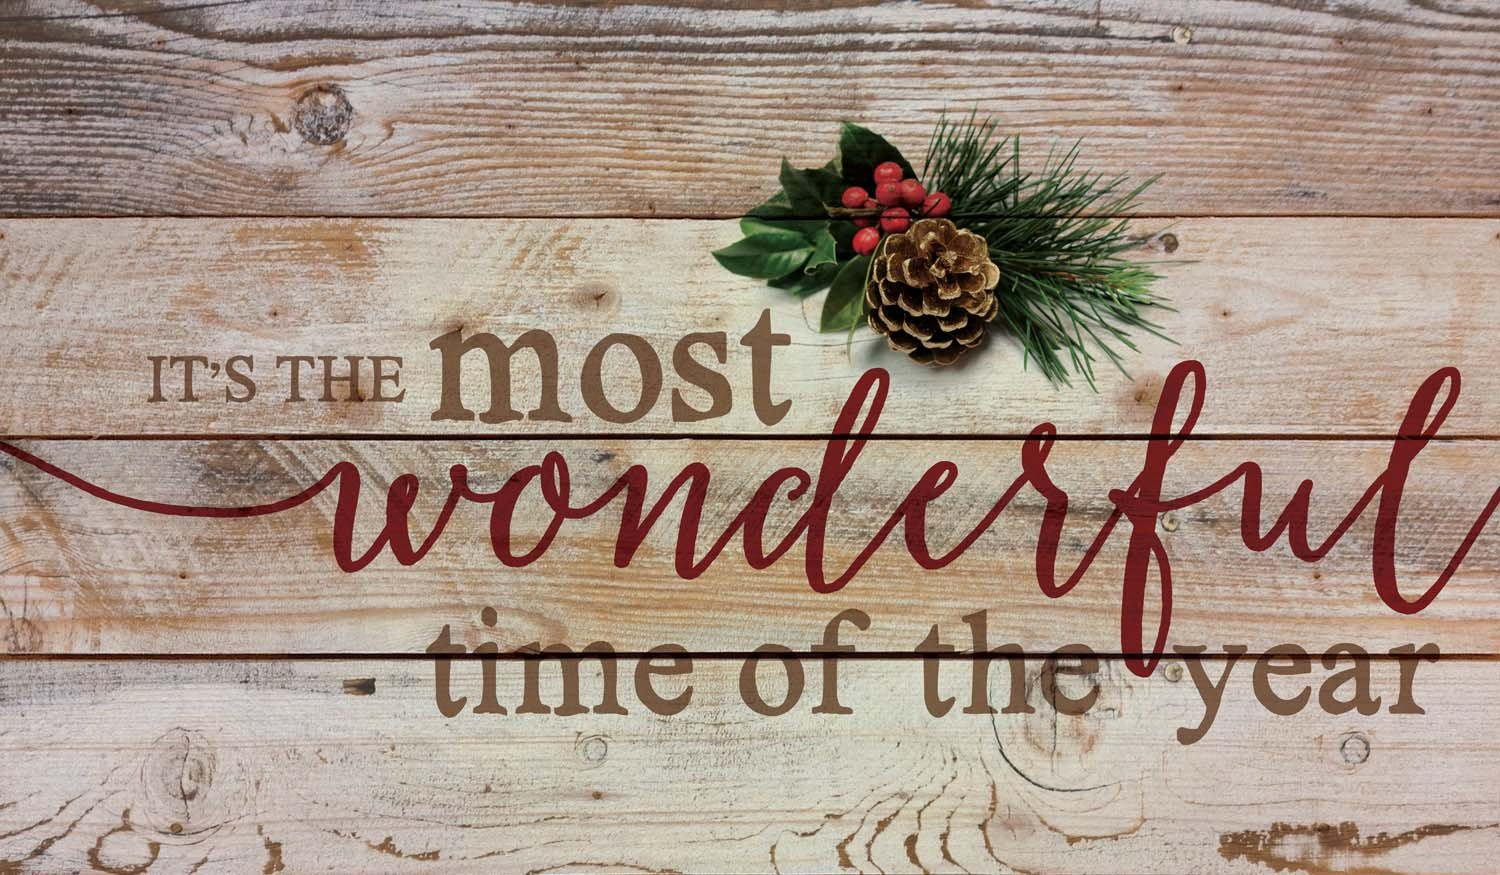 It's the Most Wonderful Time of Year Christmas Holly 14 x 24 Wood Pallet Wall Art Sign Plaque